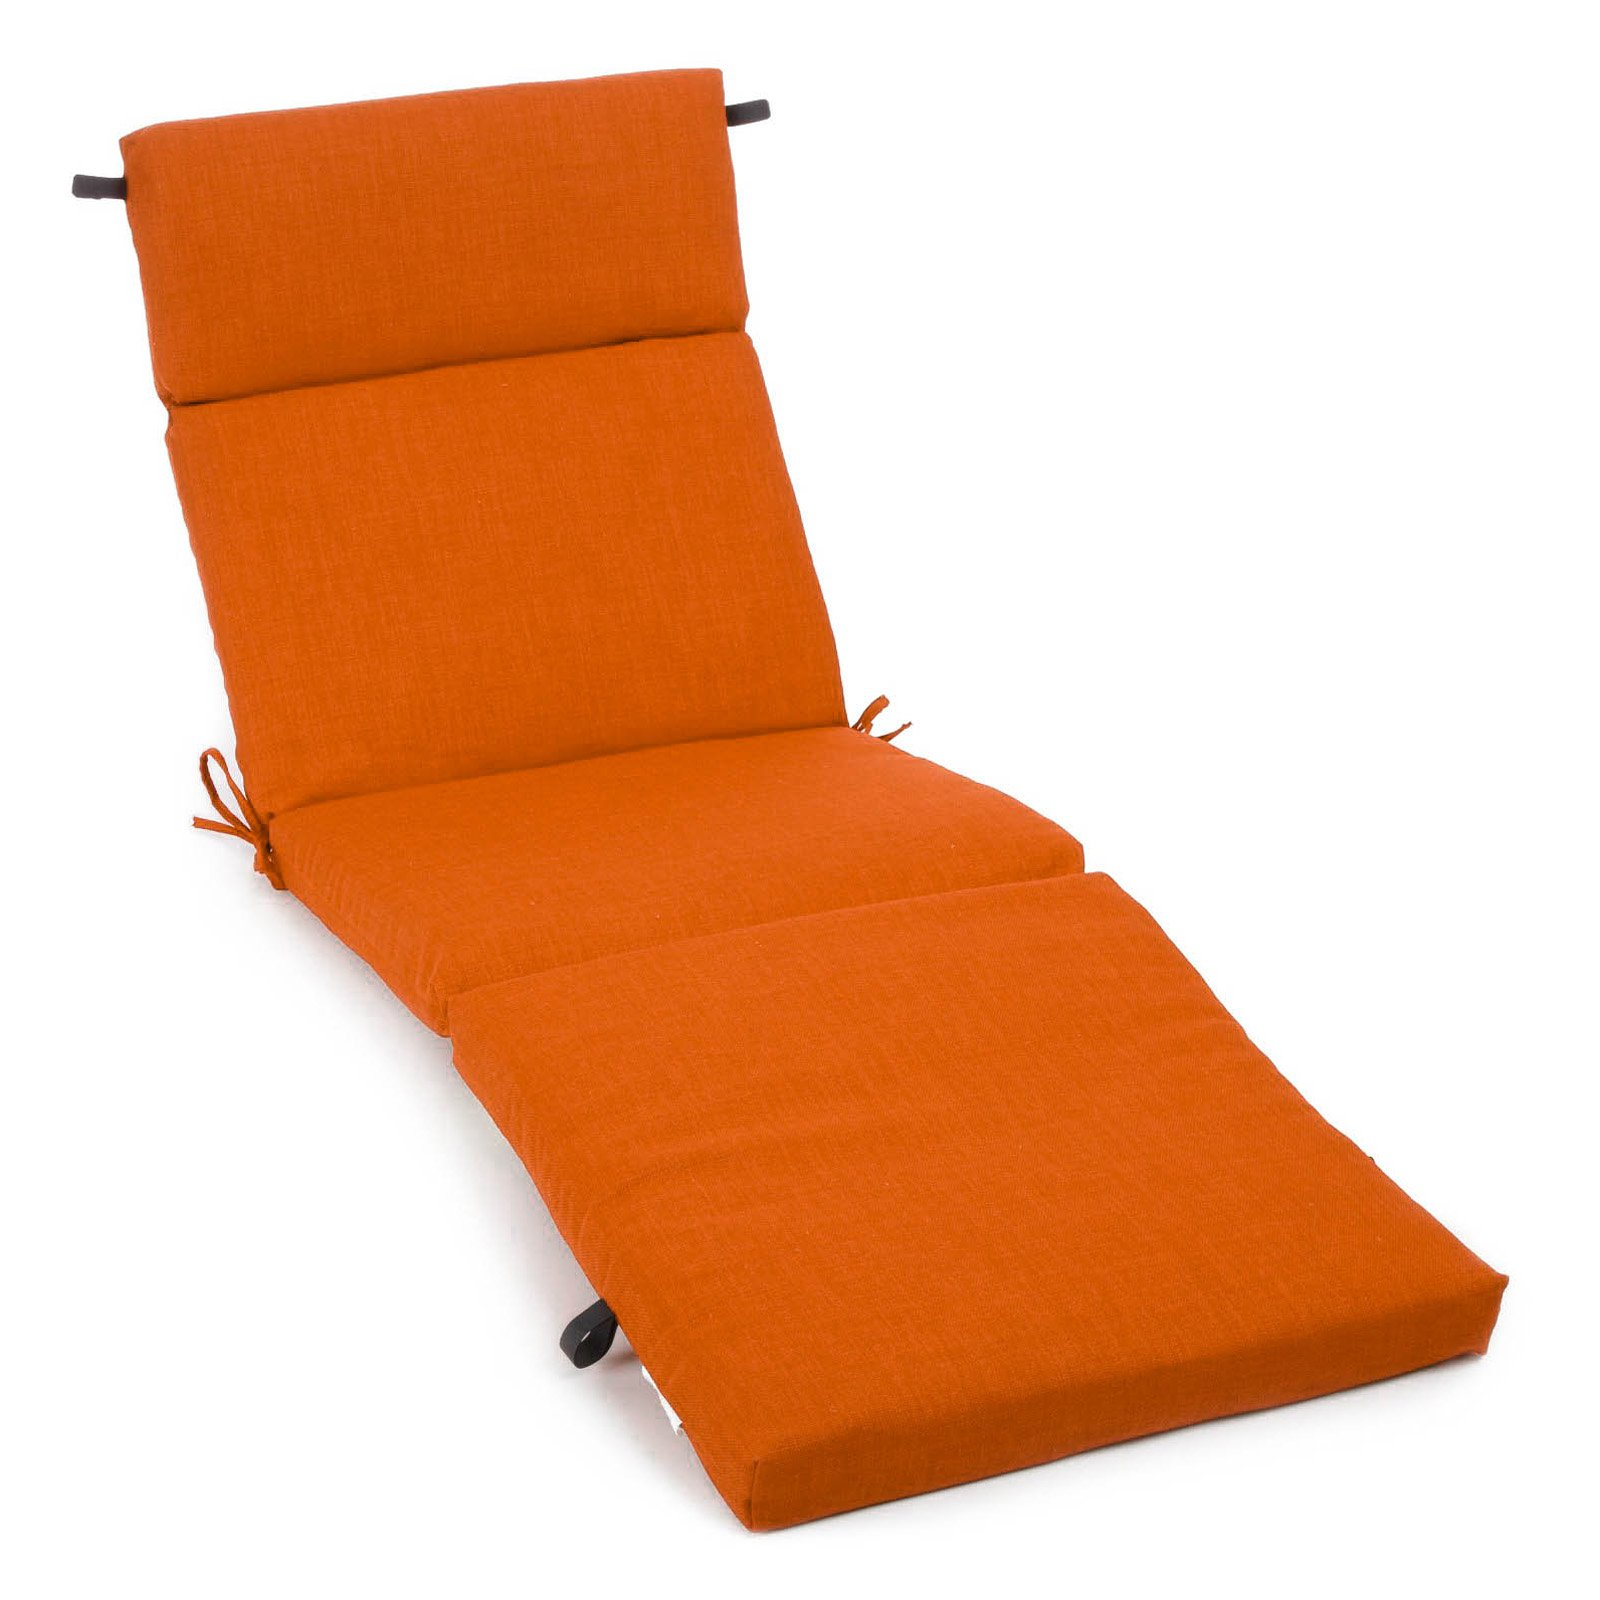 Blazing Needles 72 x 24 in. 3-Sectioned All Weather Outdoor Chaise Lounge Cushion